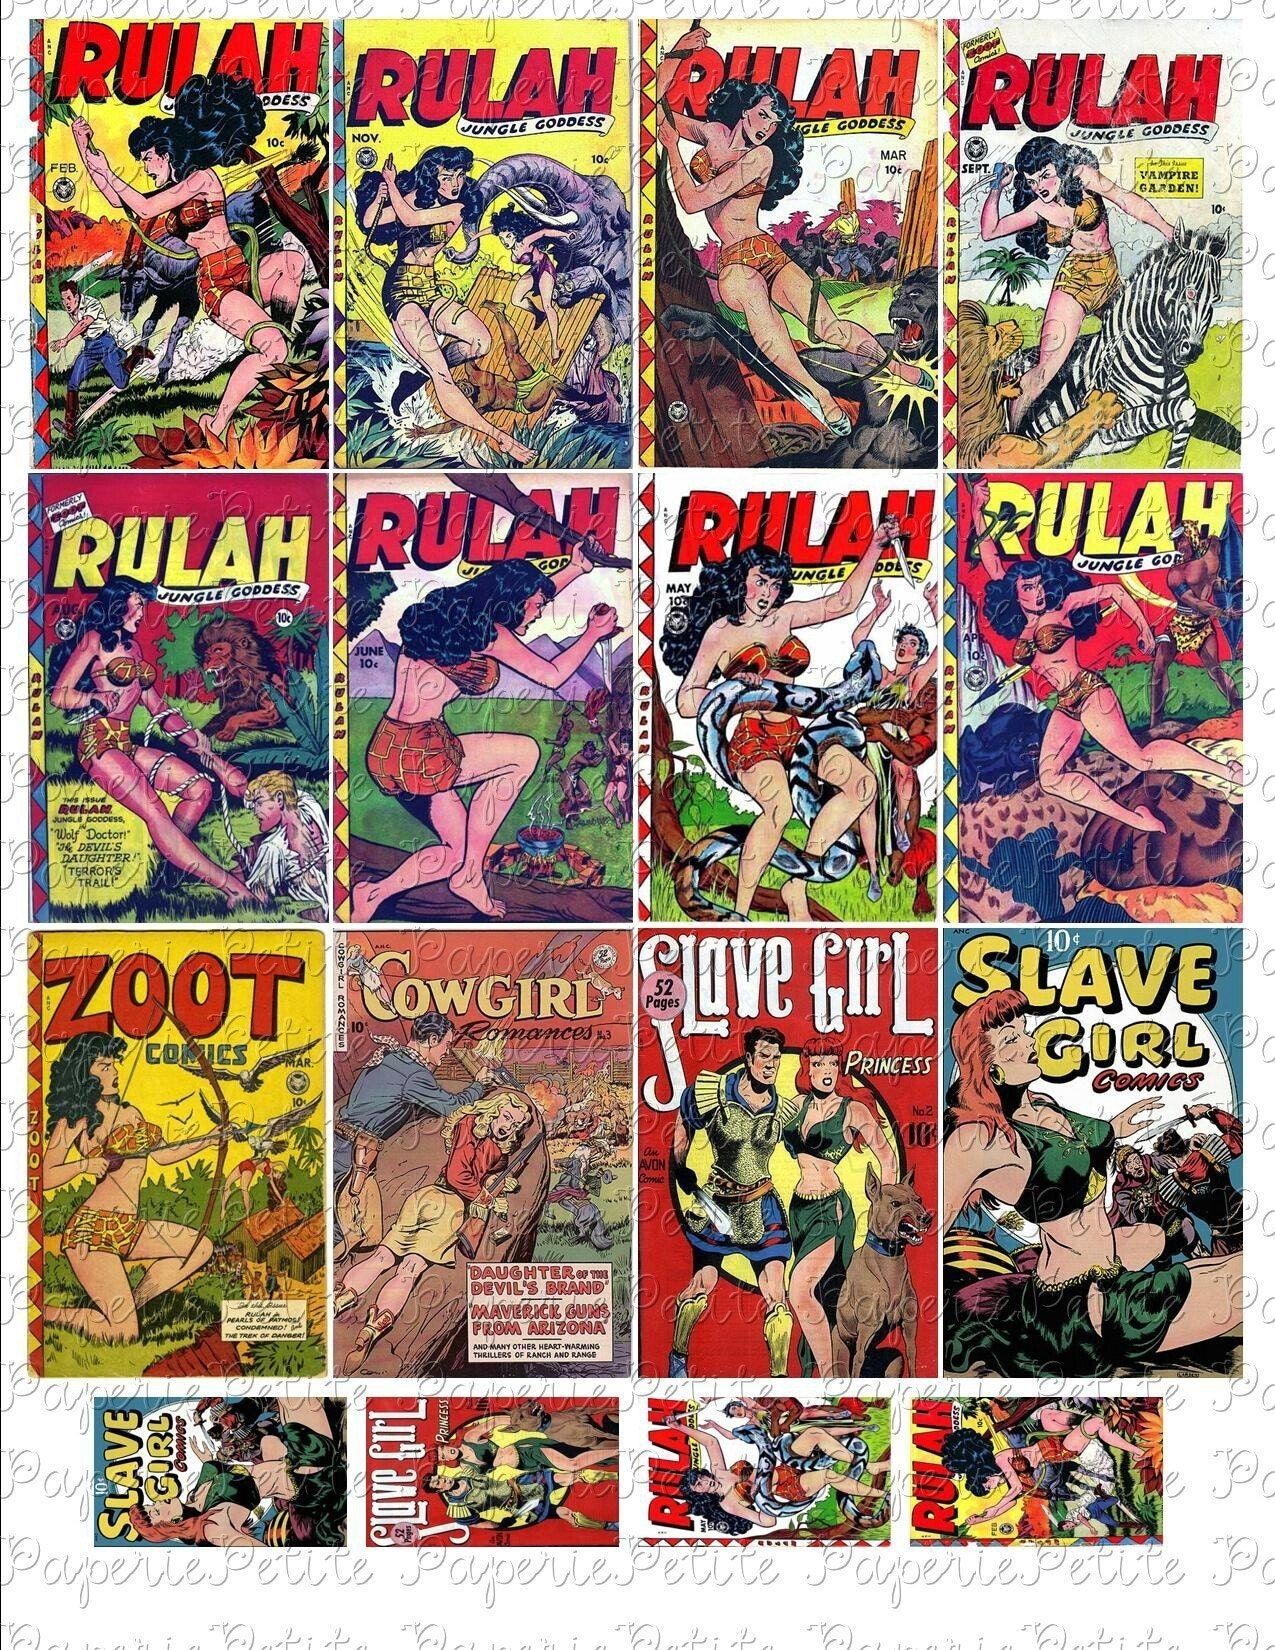 Comic Book Cover Collage : Rulah comic book covers digital download collage sheet a